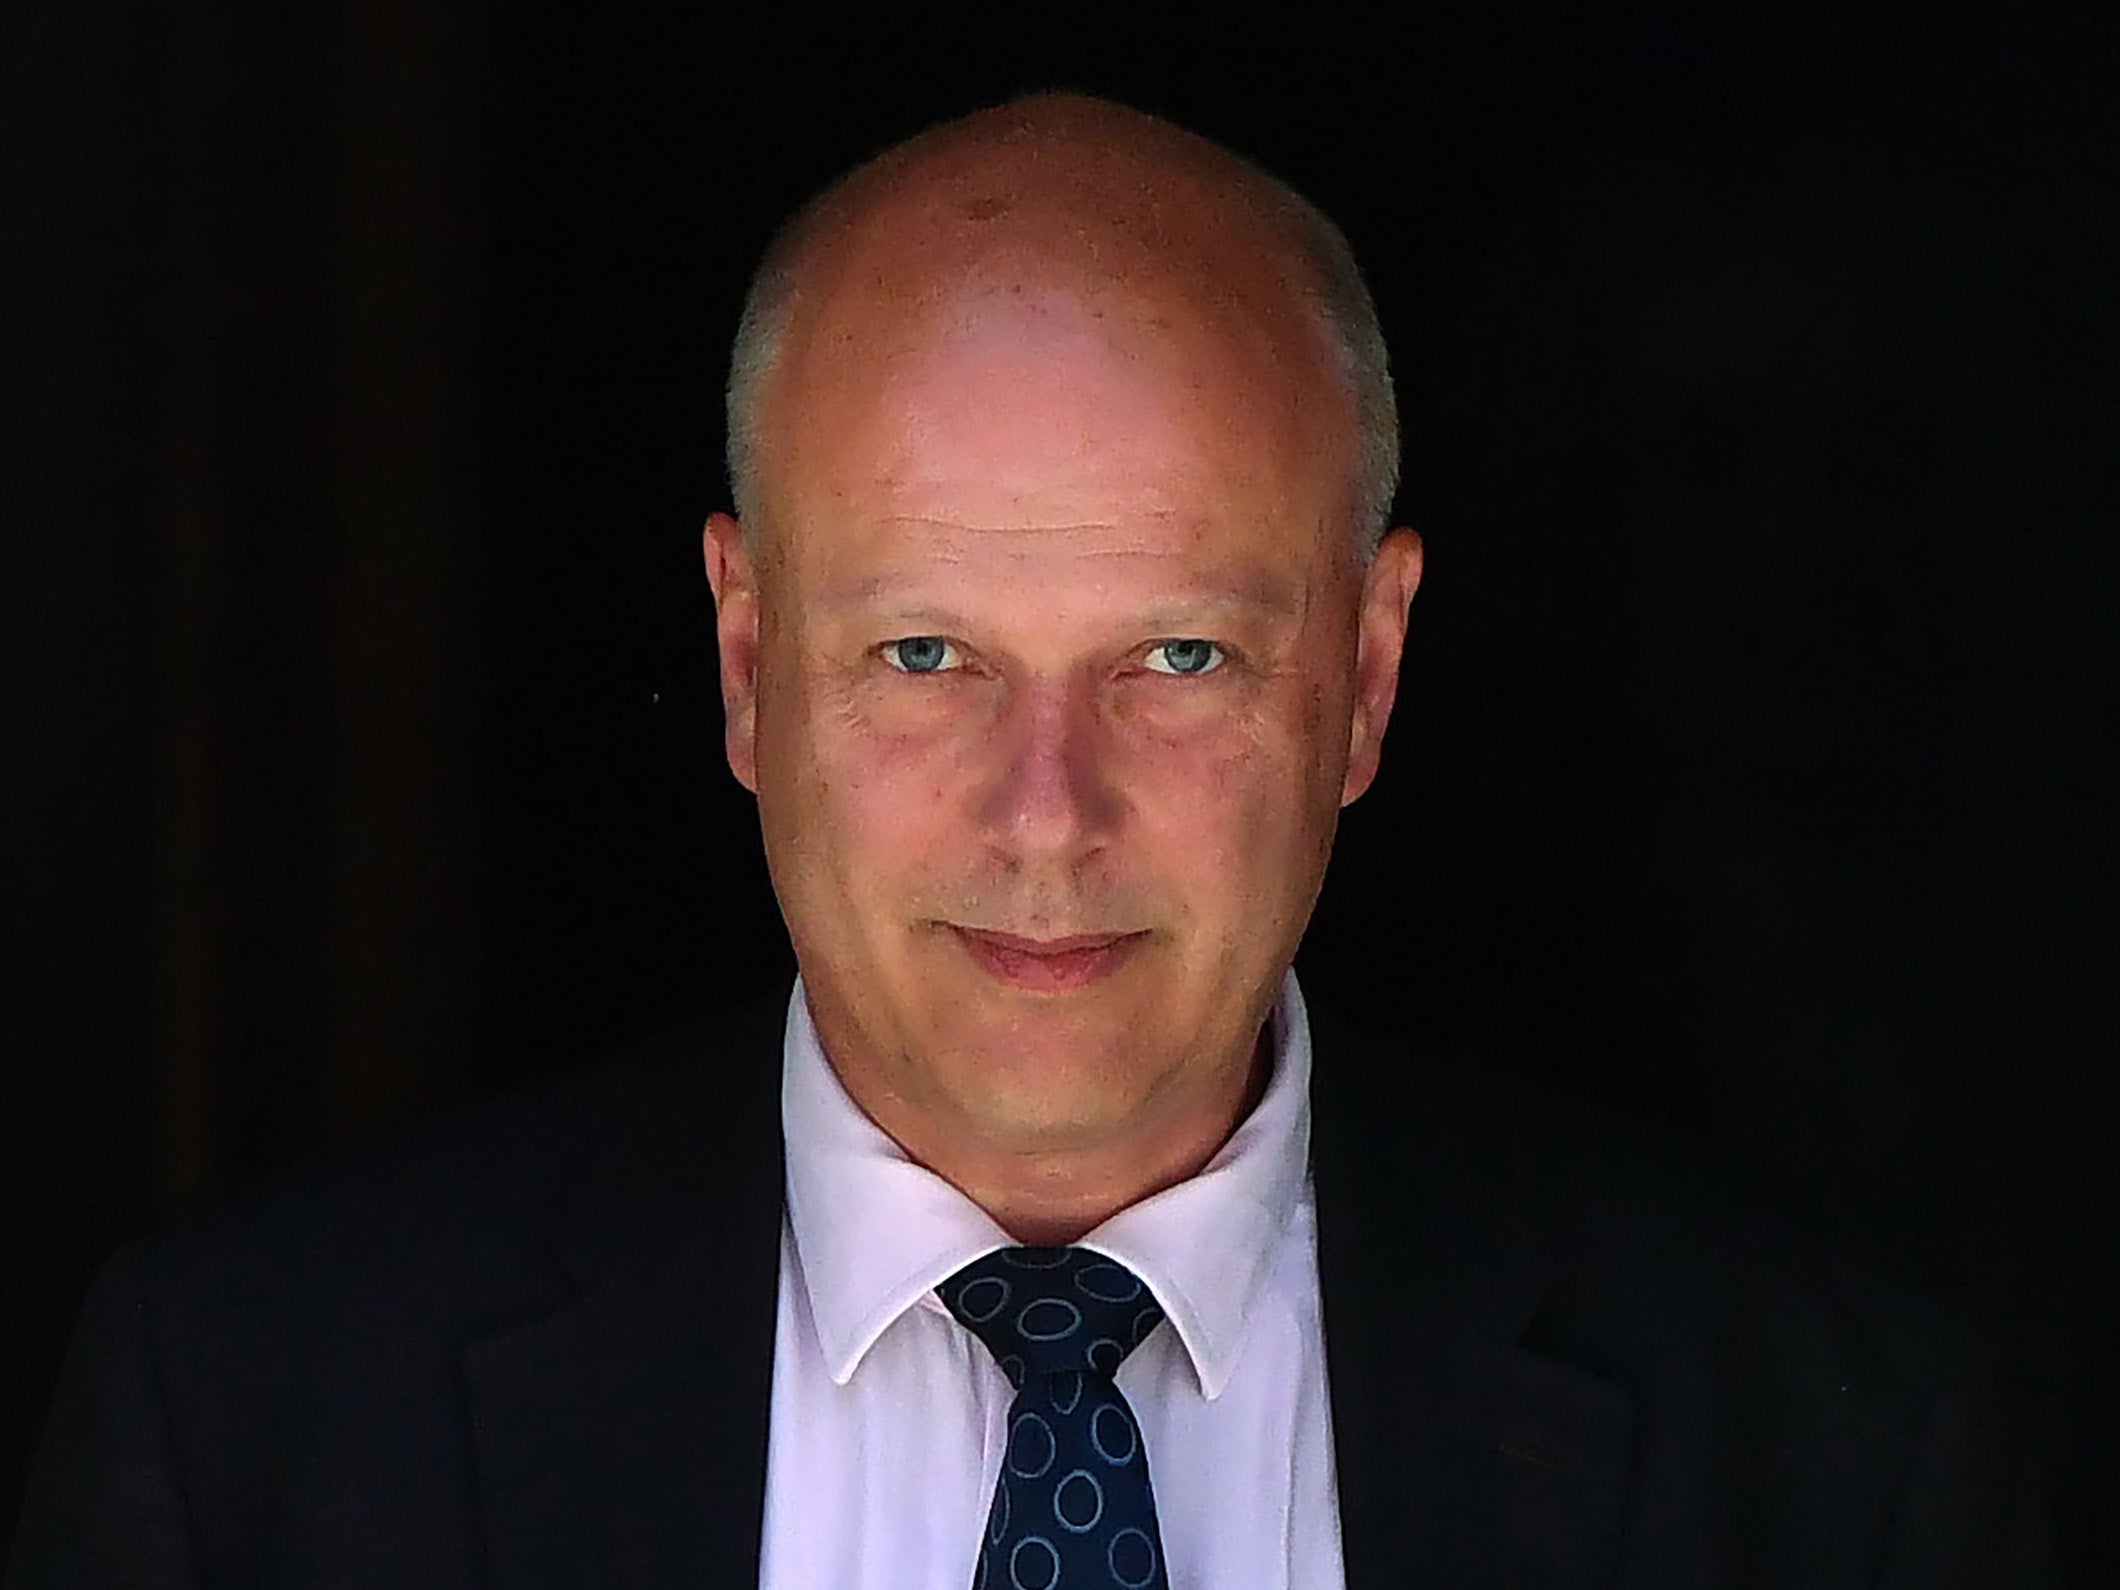 grayling personals See what jo grayling (jograyling) has discovered on pinterest, the world's biggest collection of everyone's favourite things.